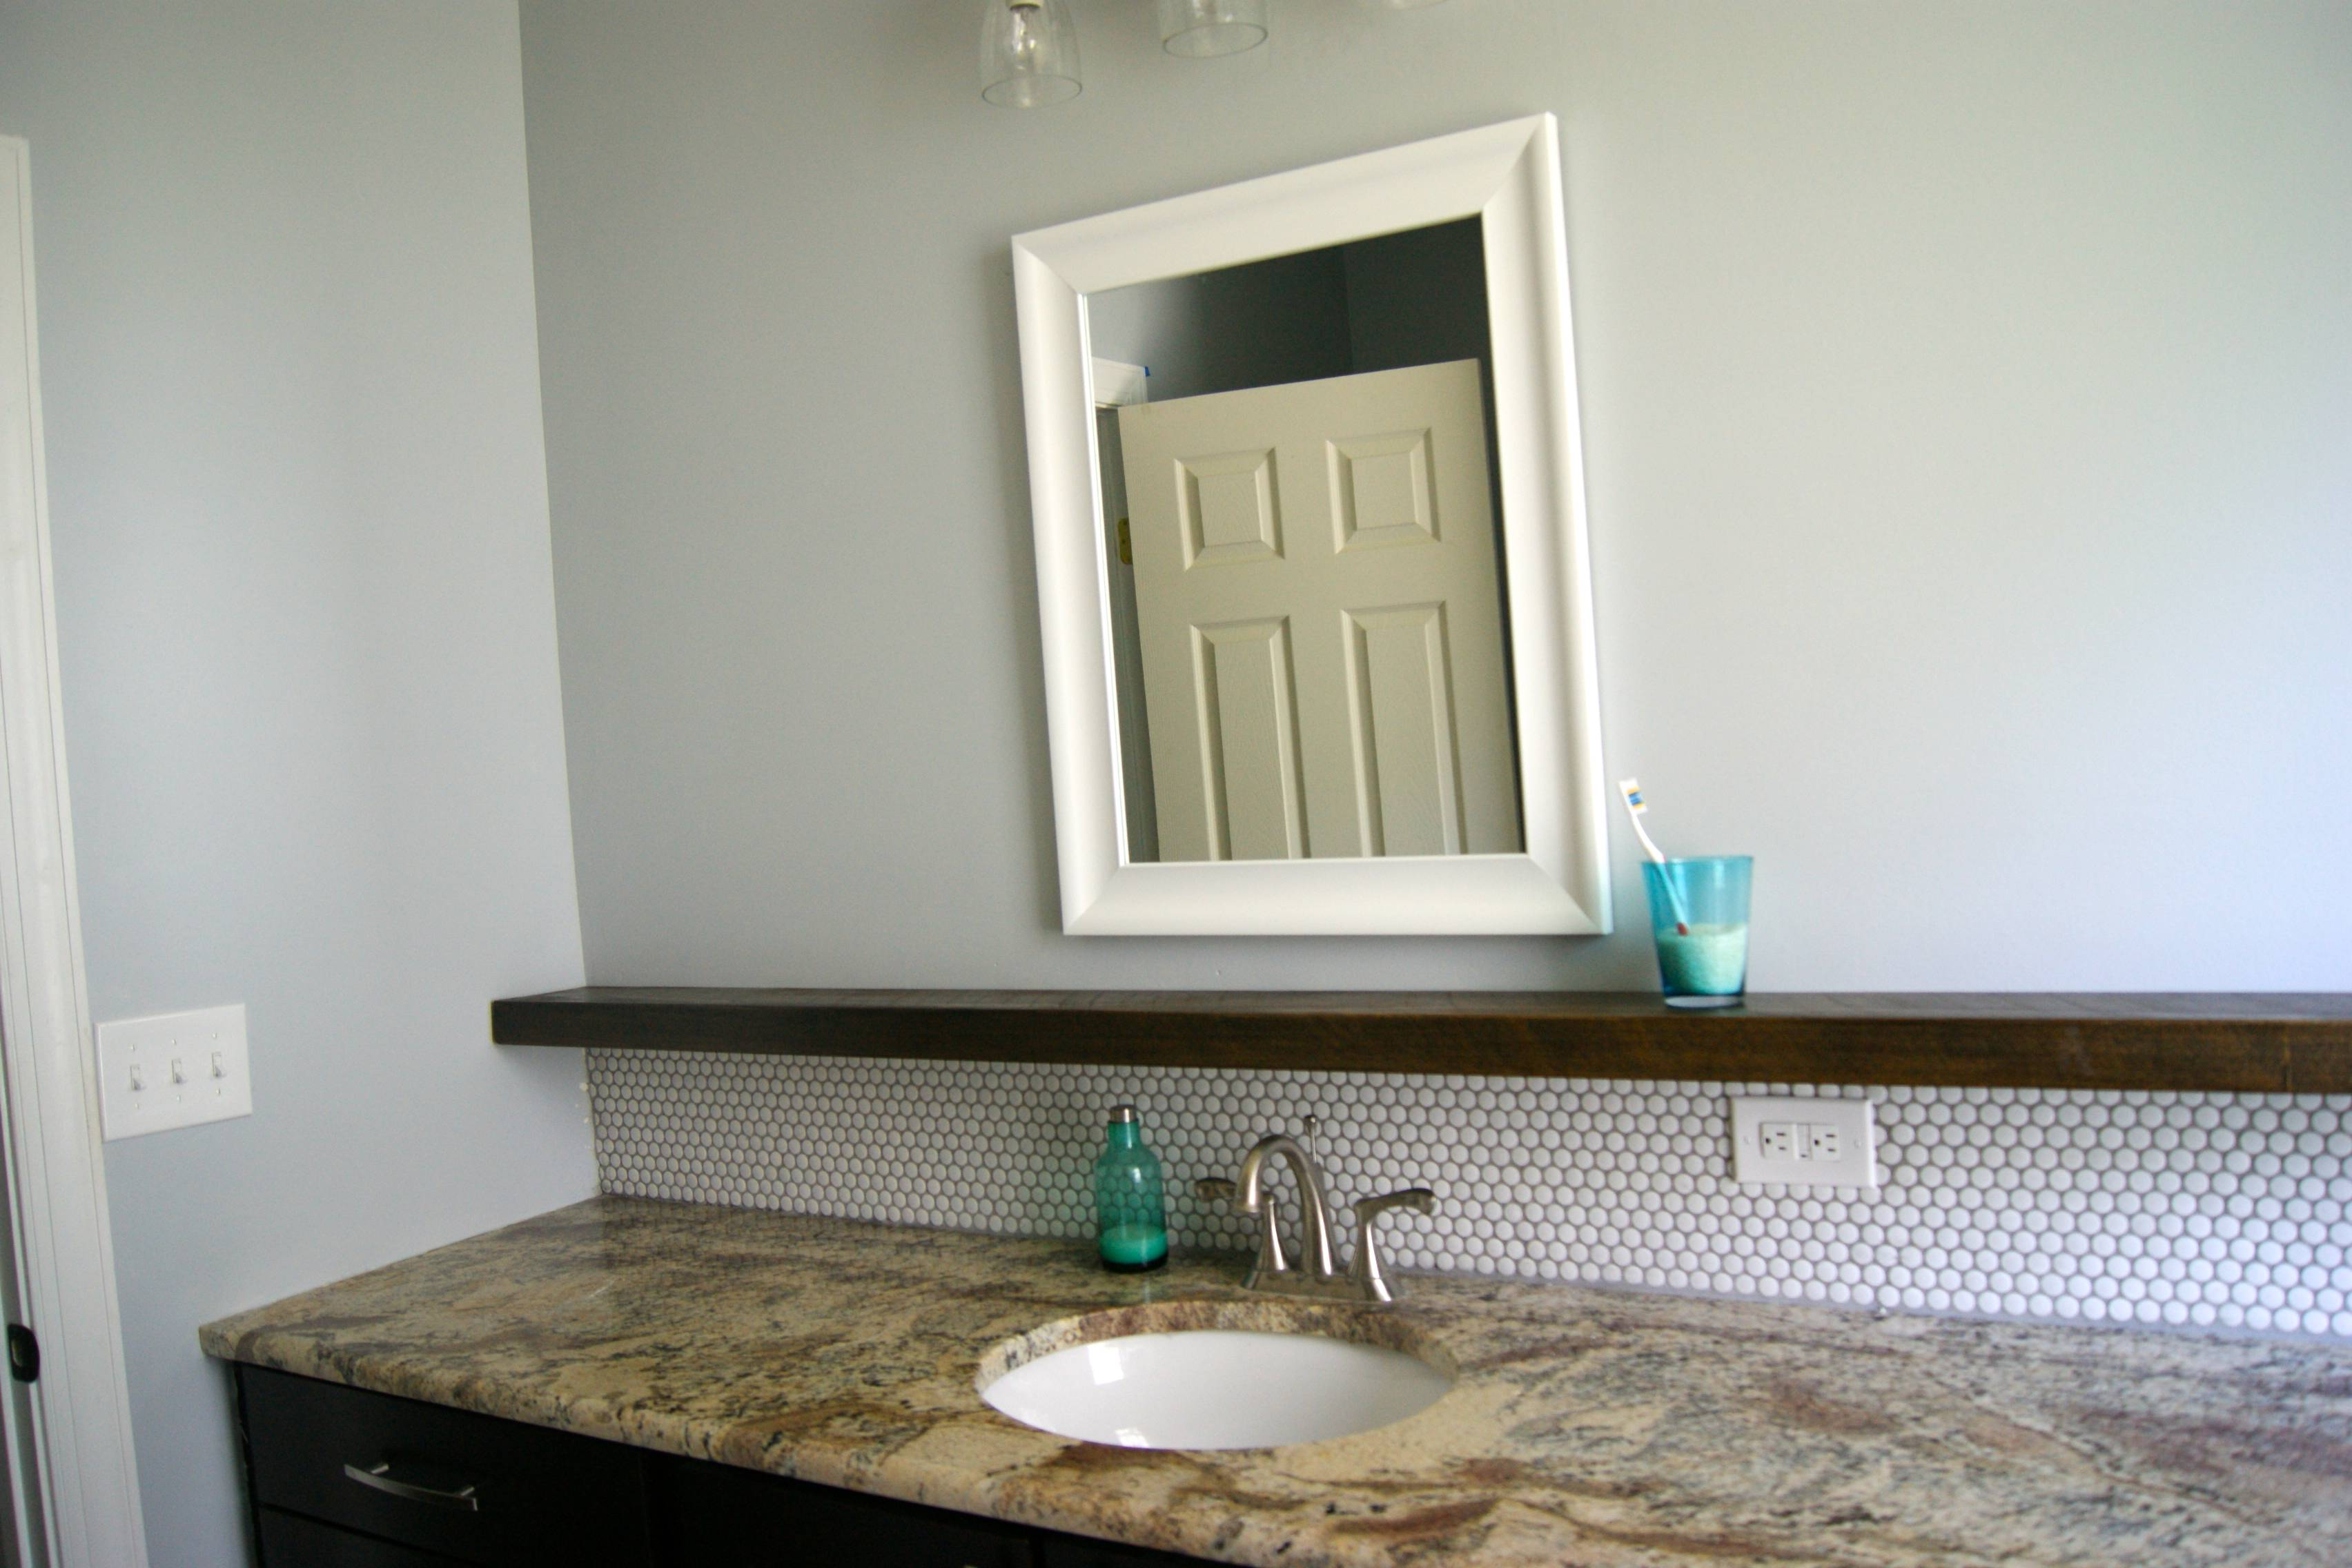 bathroom tile backsplash. Tips For Installing A Penny Tile Backsplash + Floating Shelf | Remodelaholic Bloglovin\u0027 Bathroom